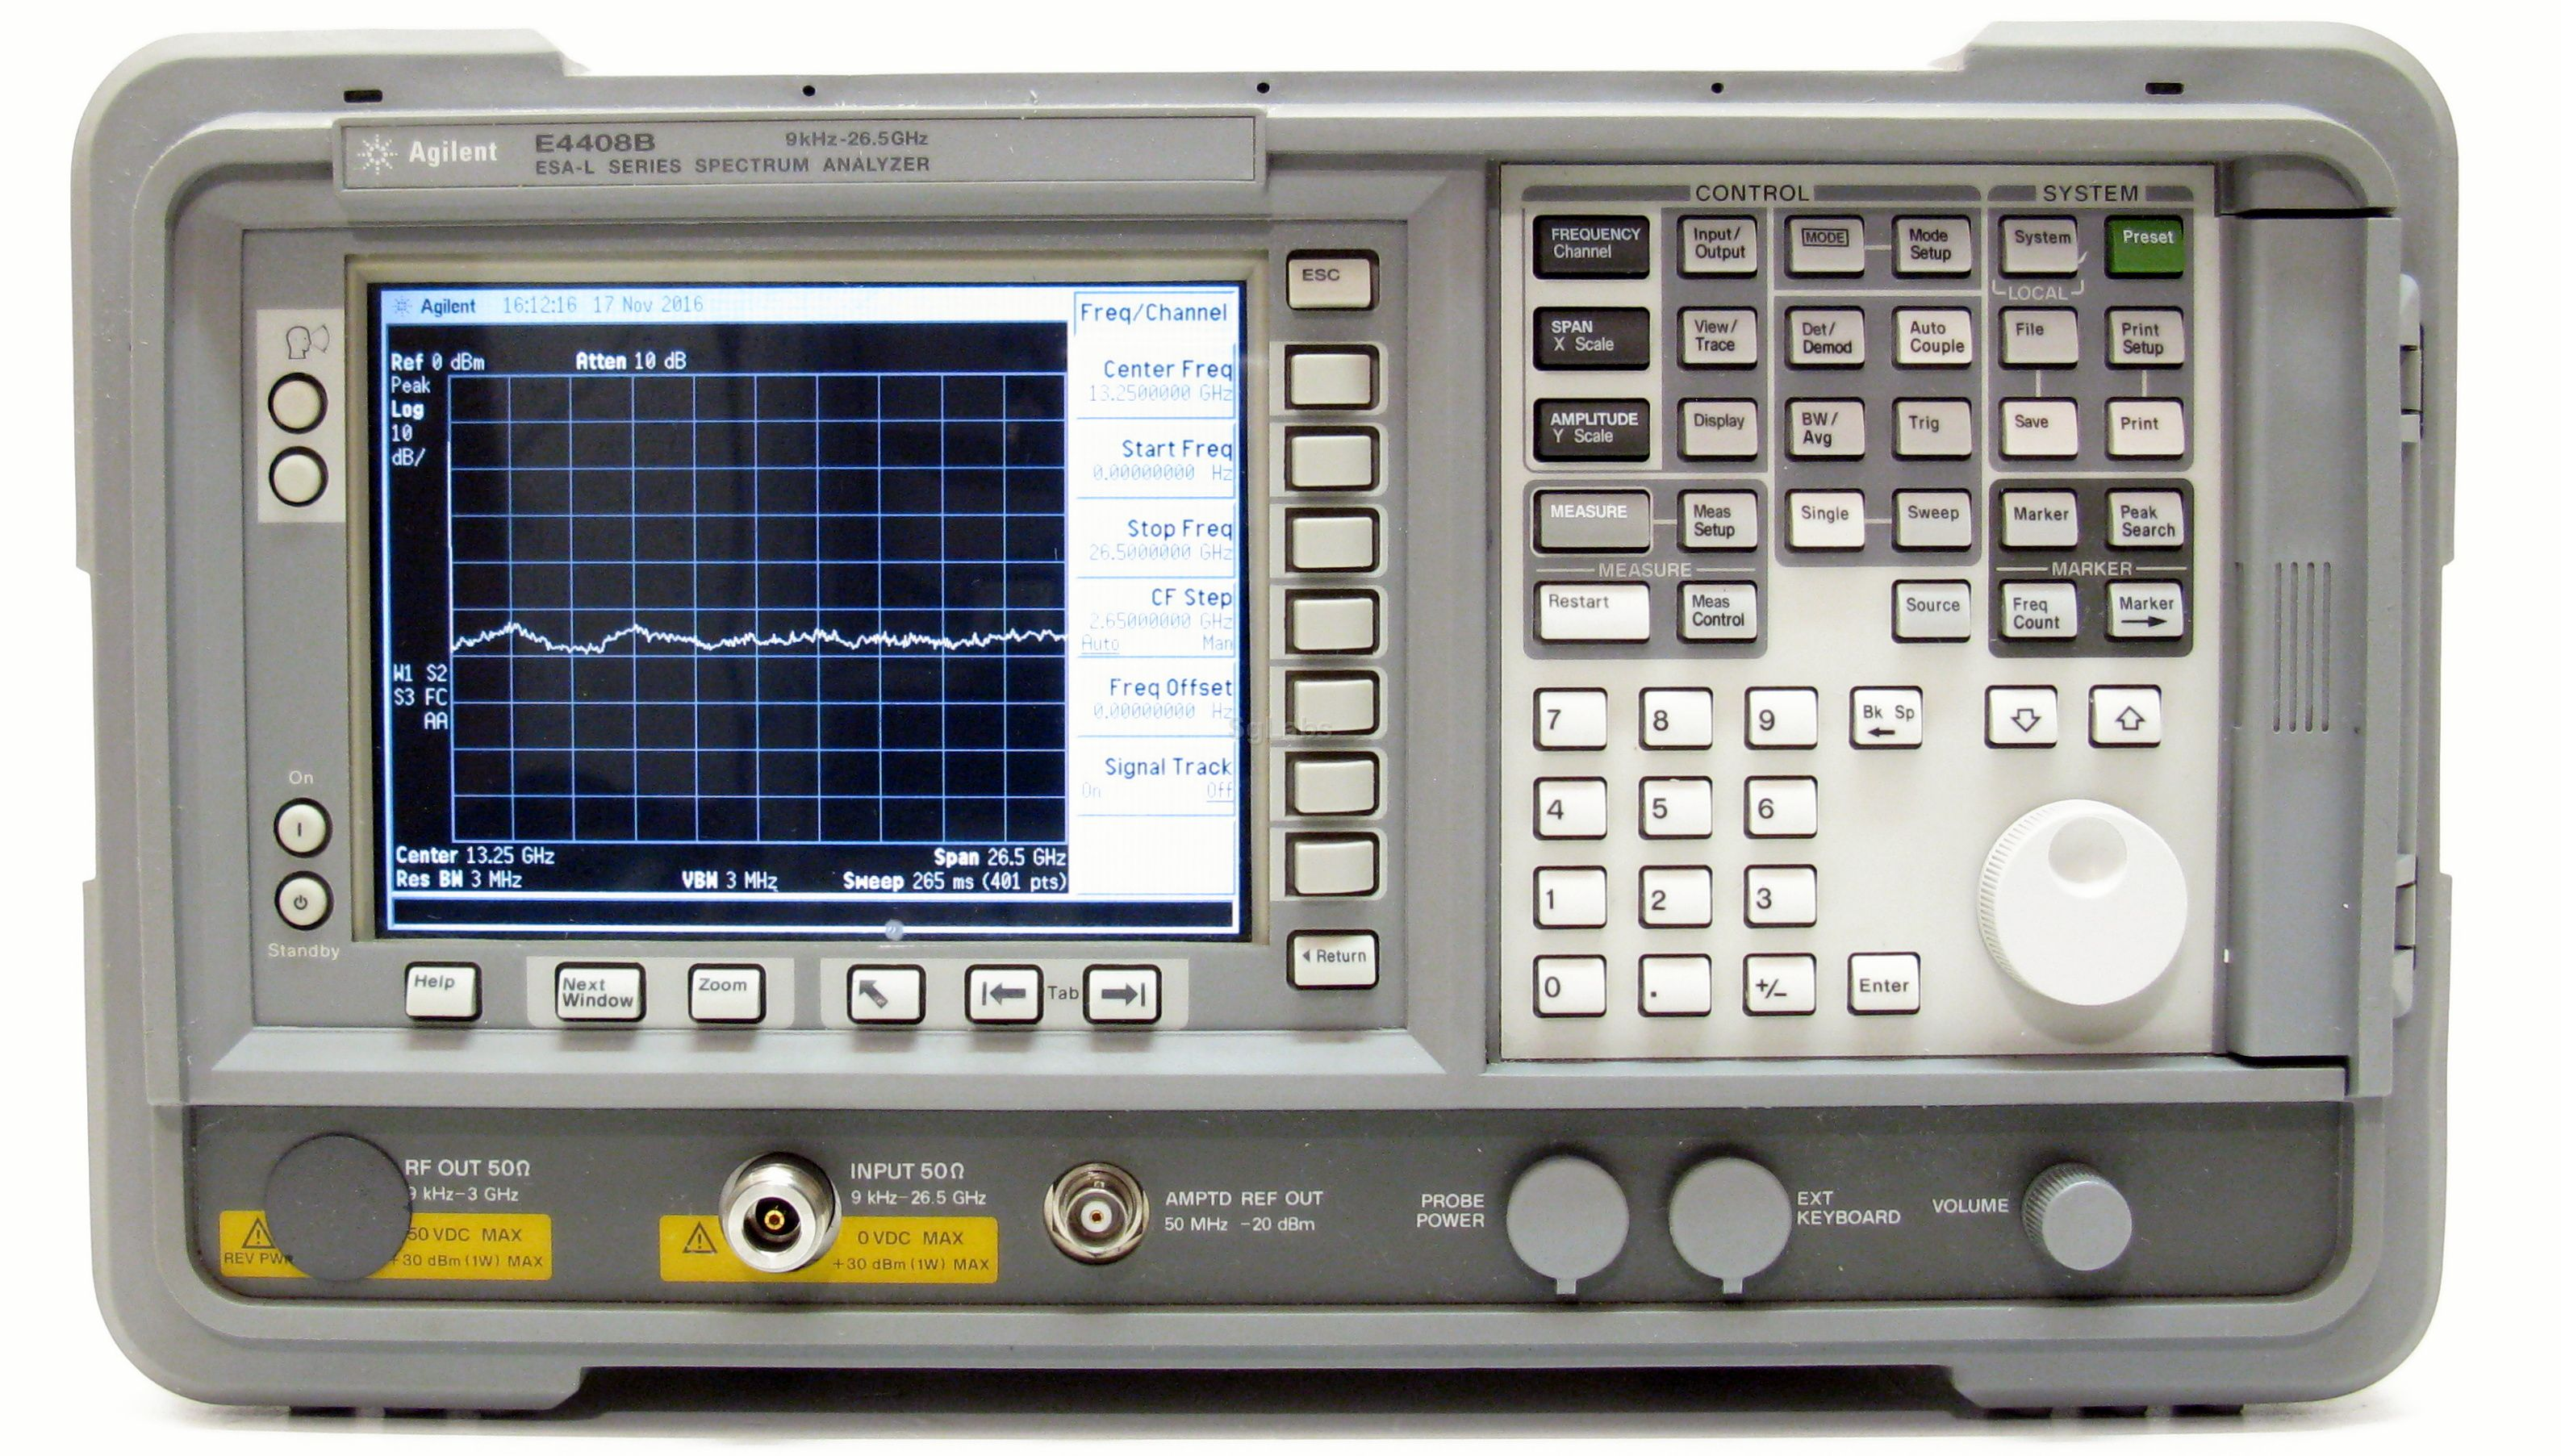 Keysight E4408B 9 kHz - 26.5 GHz, ESA-L Standard Spectrum Analyzer